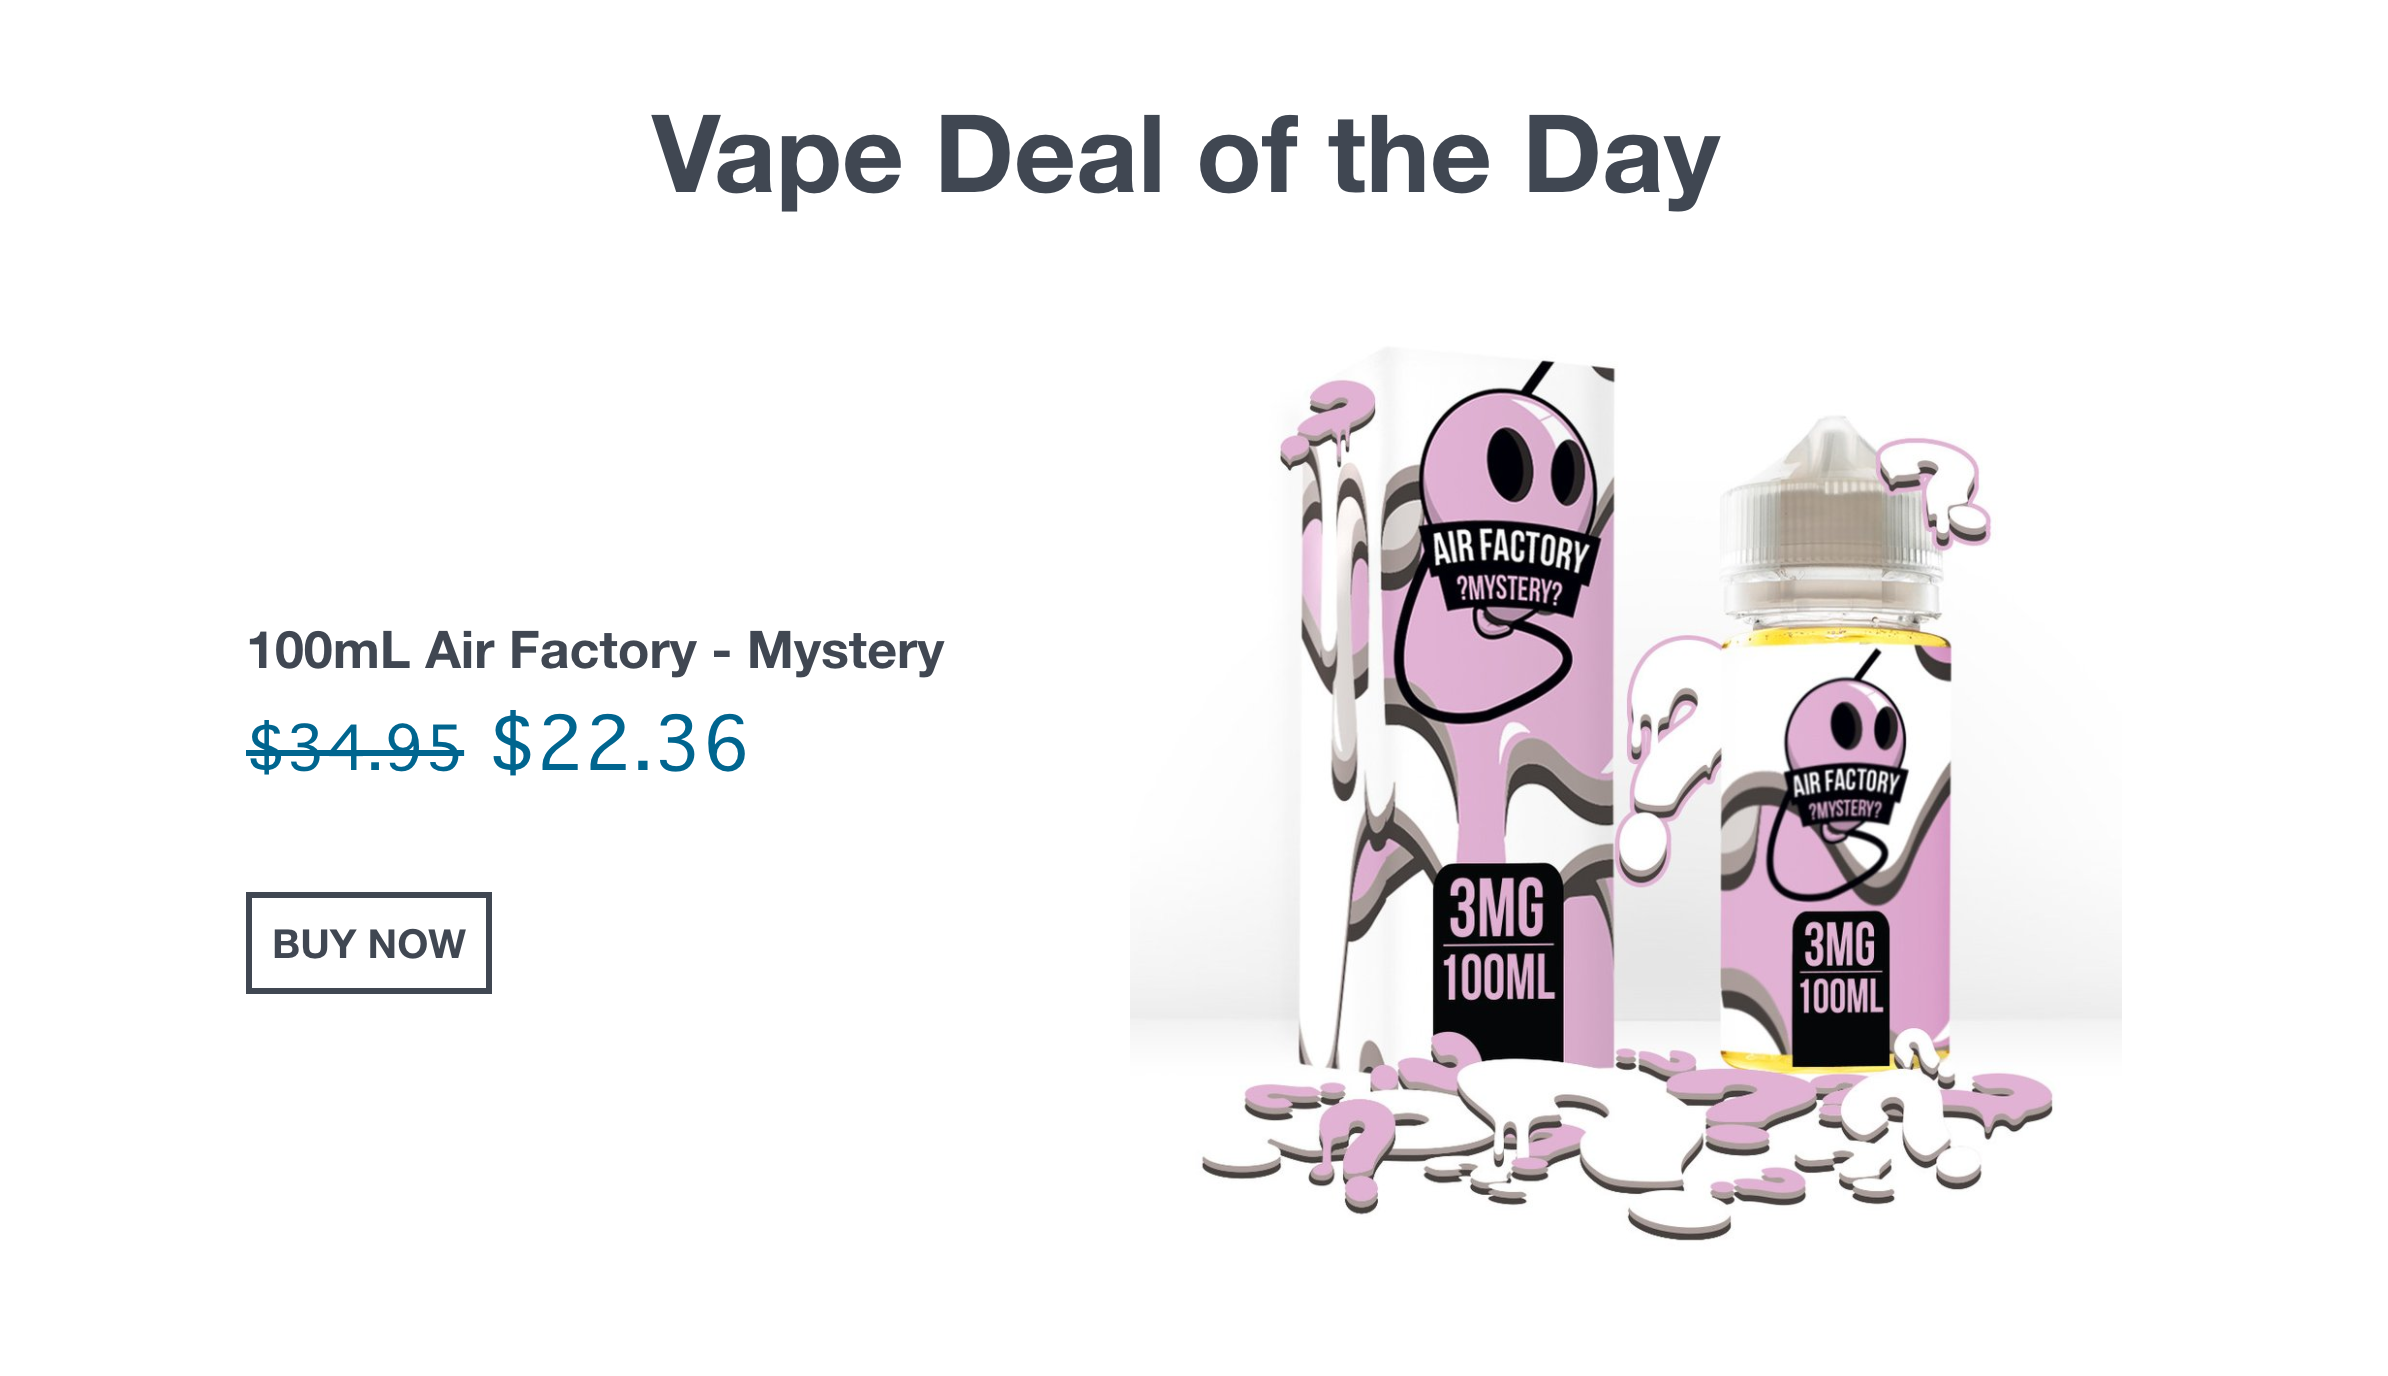 Air Factory 100mL Mystery $22.36